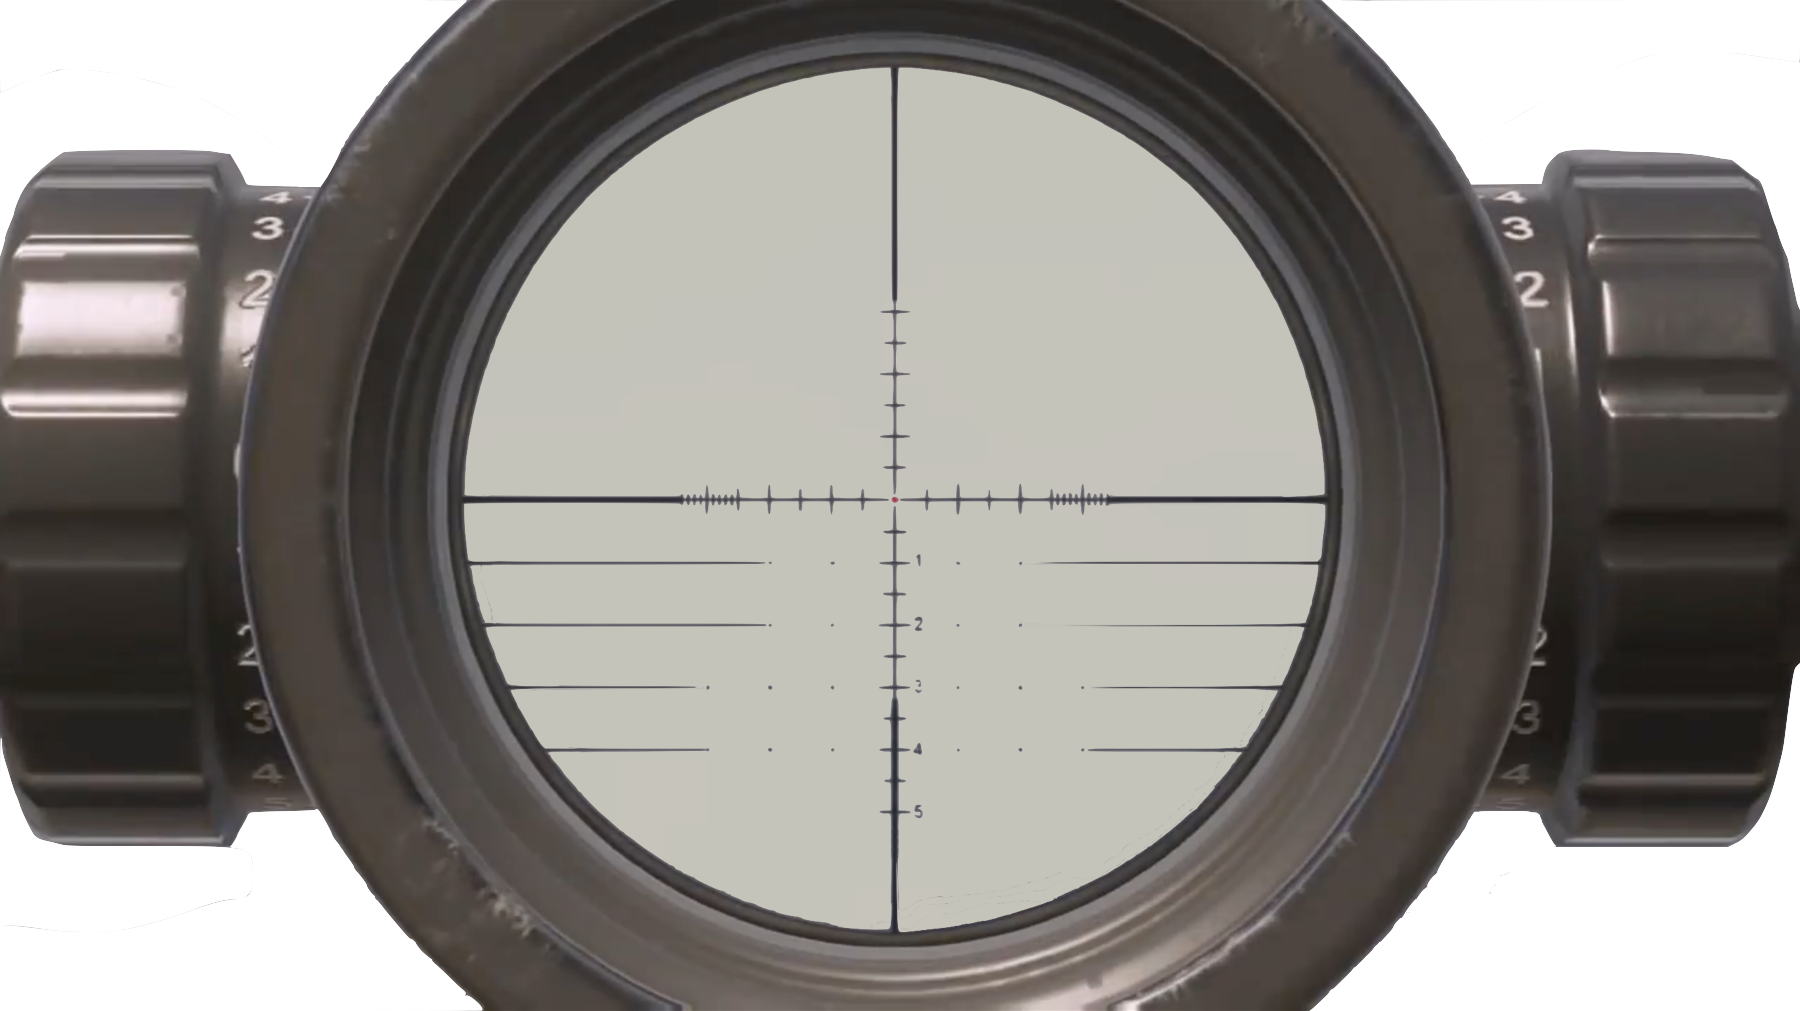 S tac aggressor png. Image scope mwr call